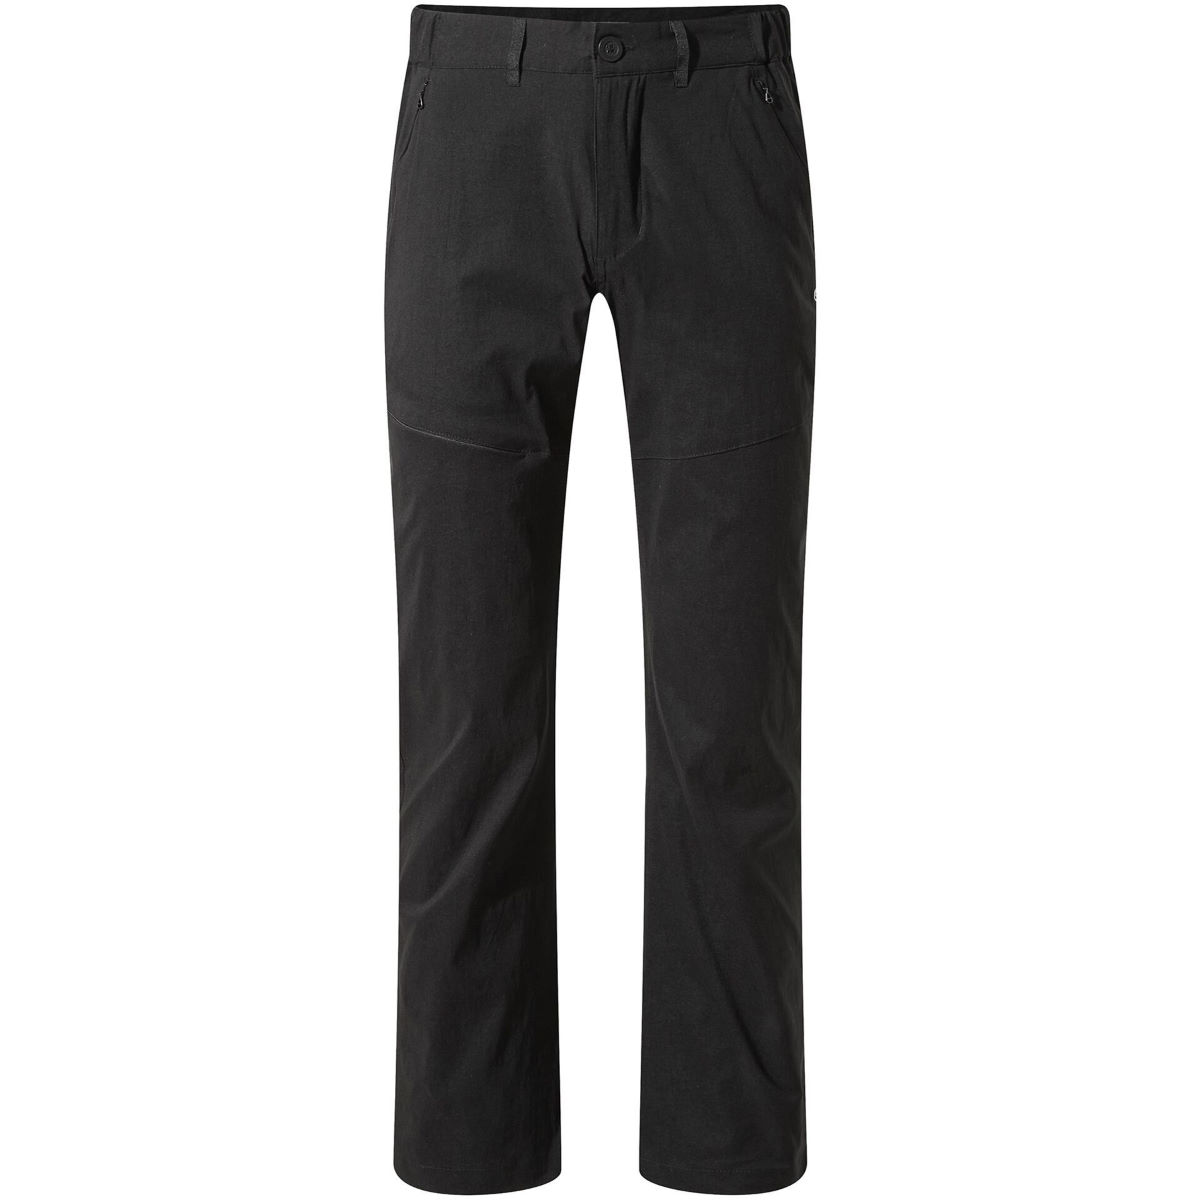 Craghoppers Craghoppers Kiwi Pro II Trousers   Trousers